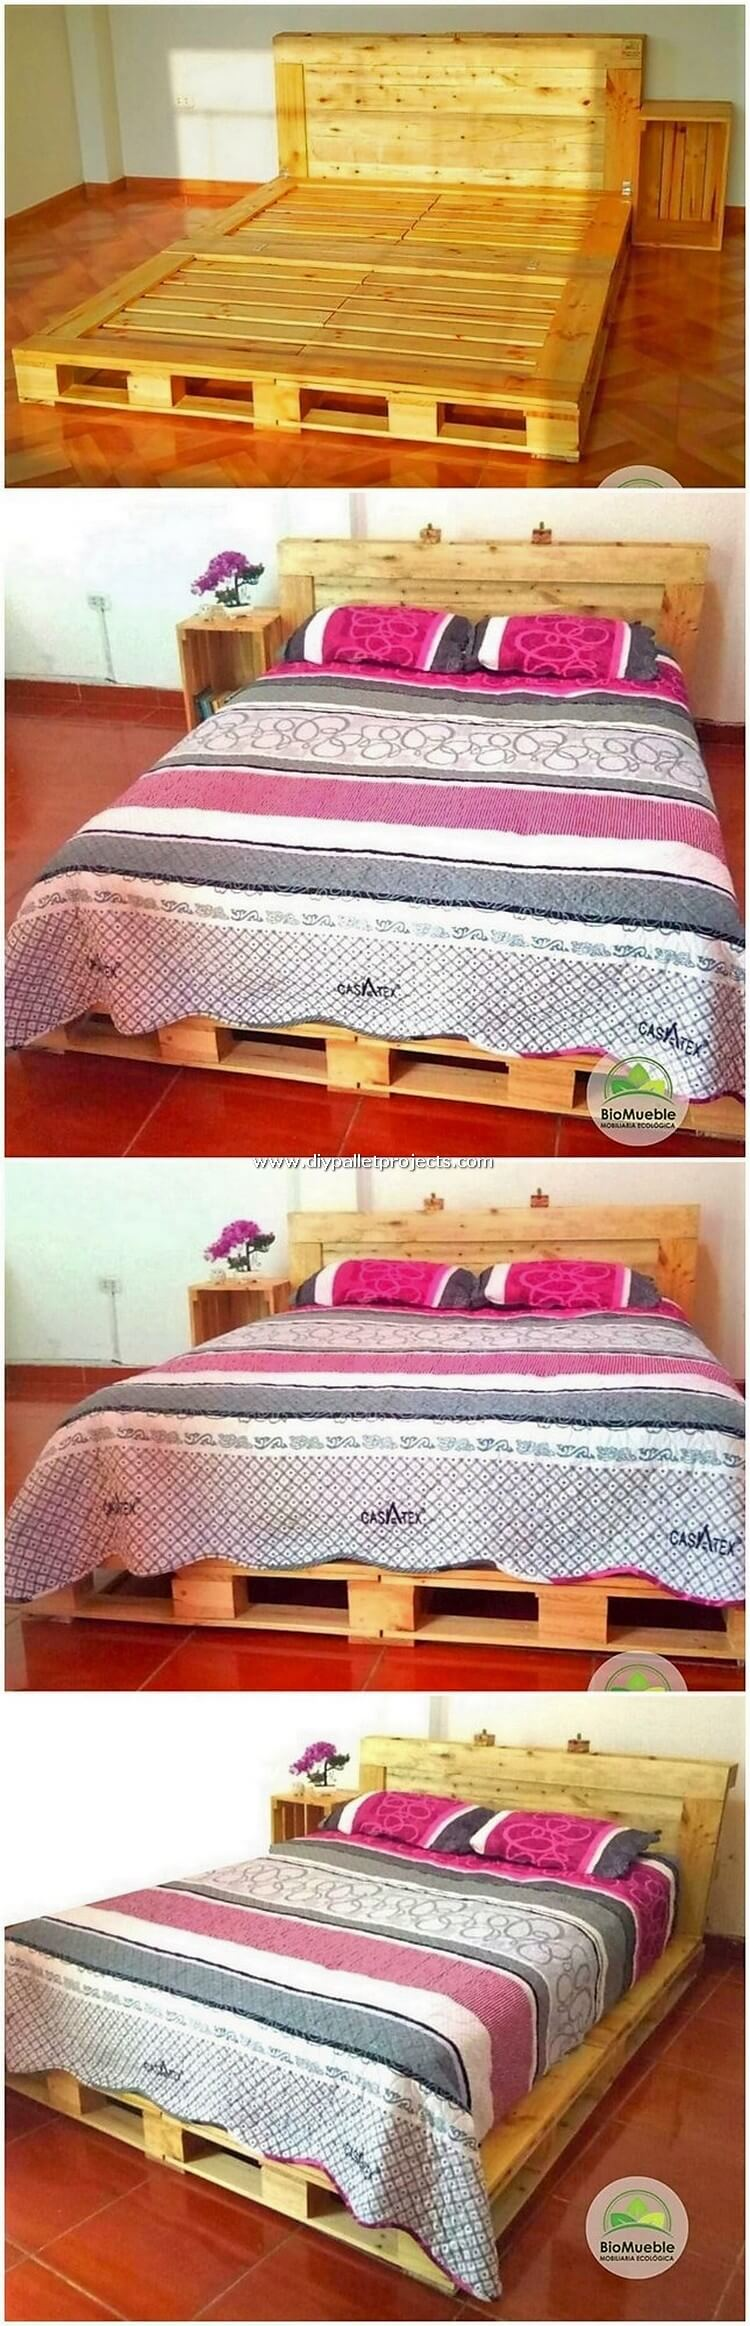 Pallet Bed and Side Table